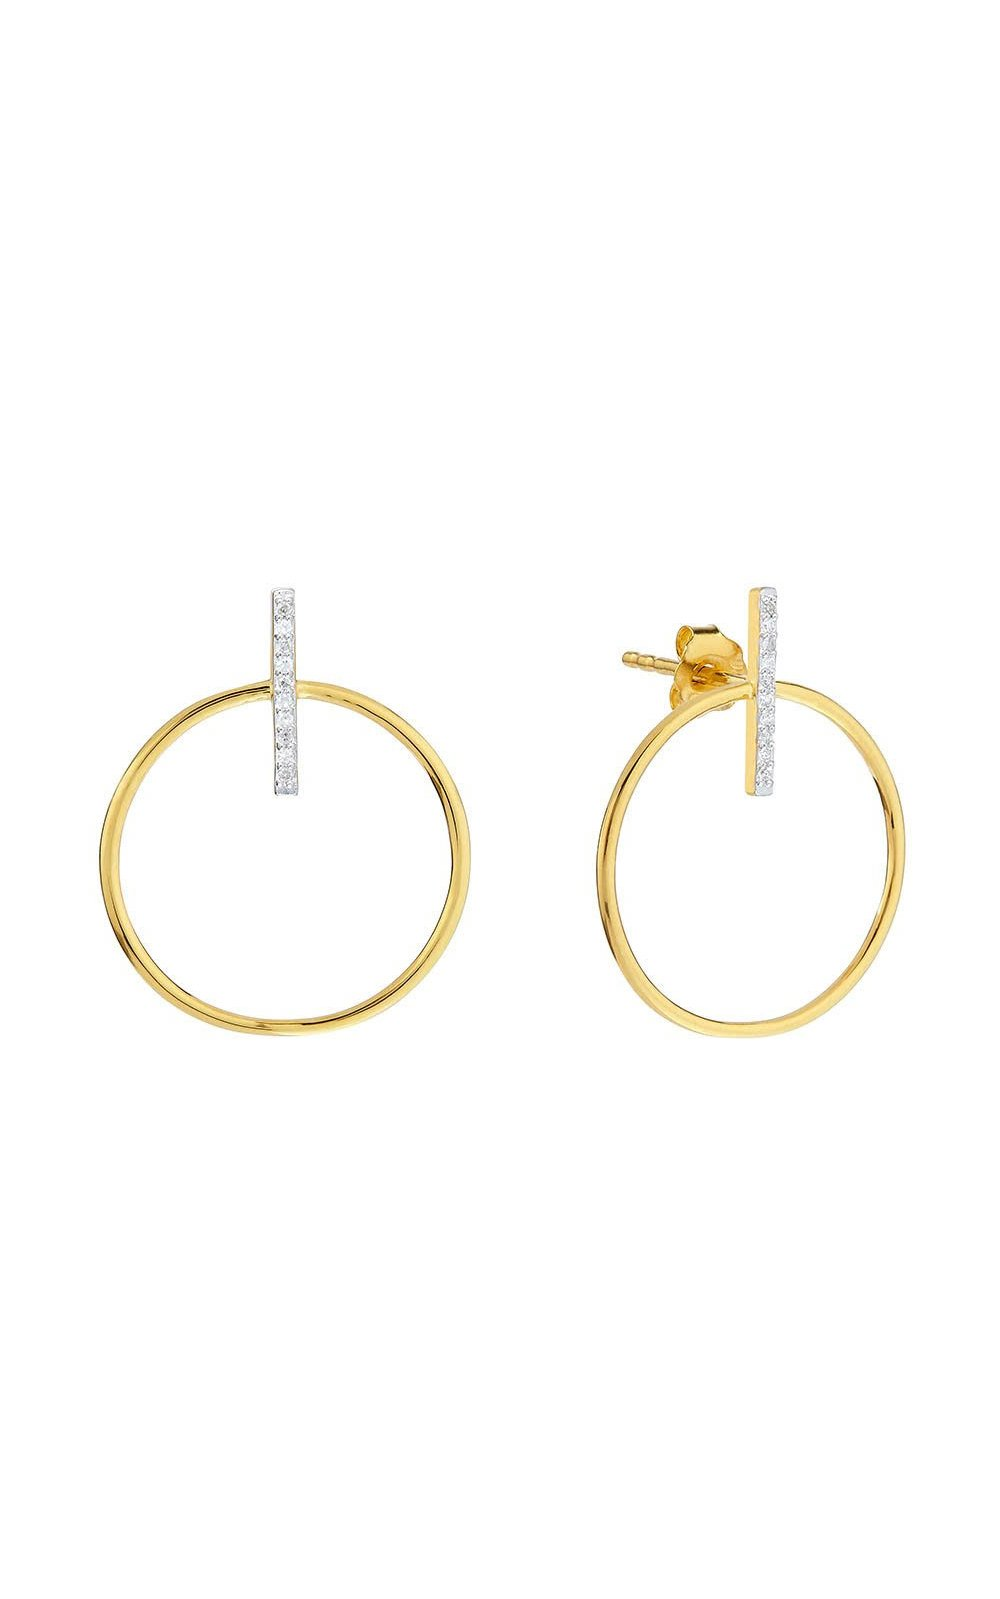 Contemporary Diamond Bar Hoop Earrings